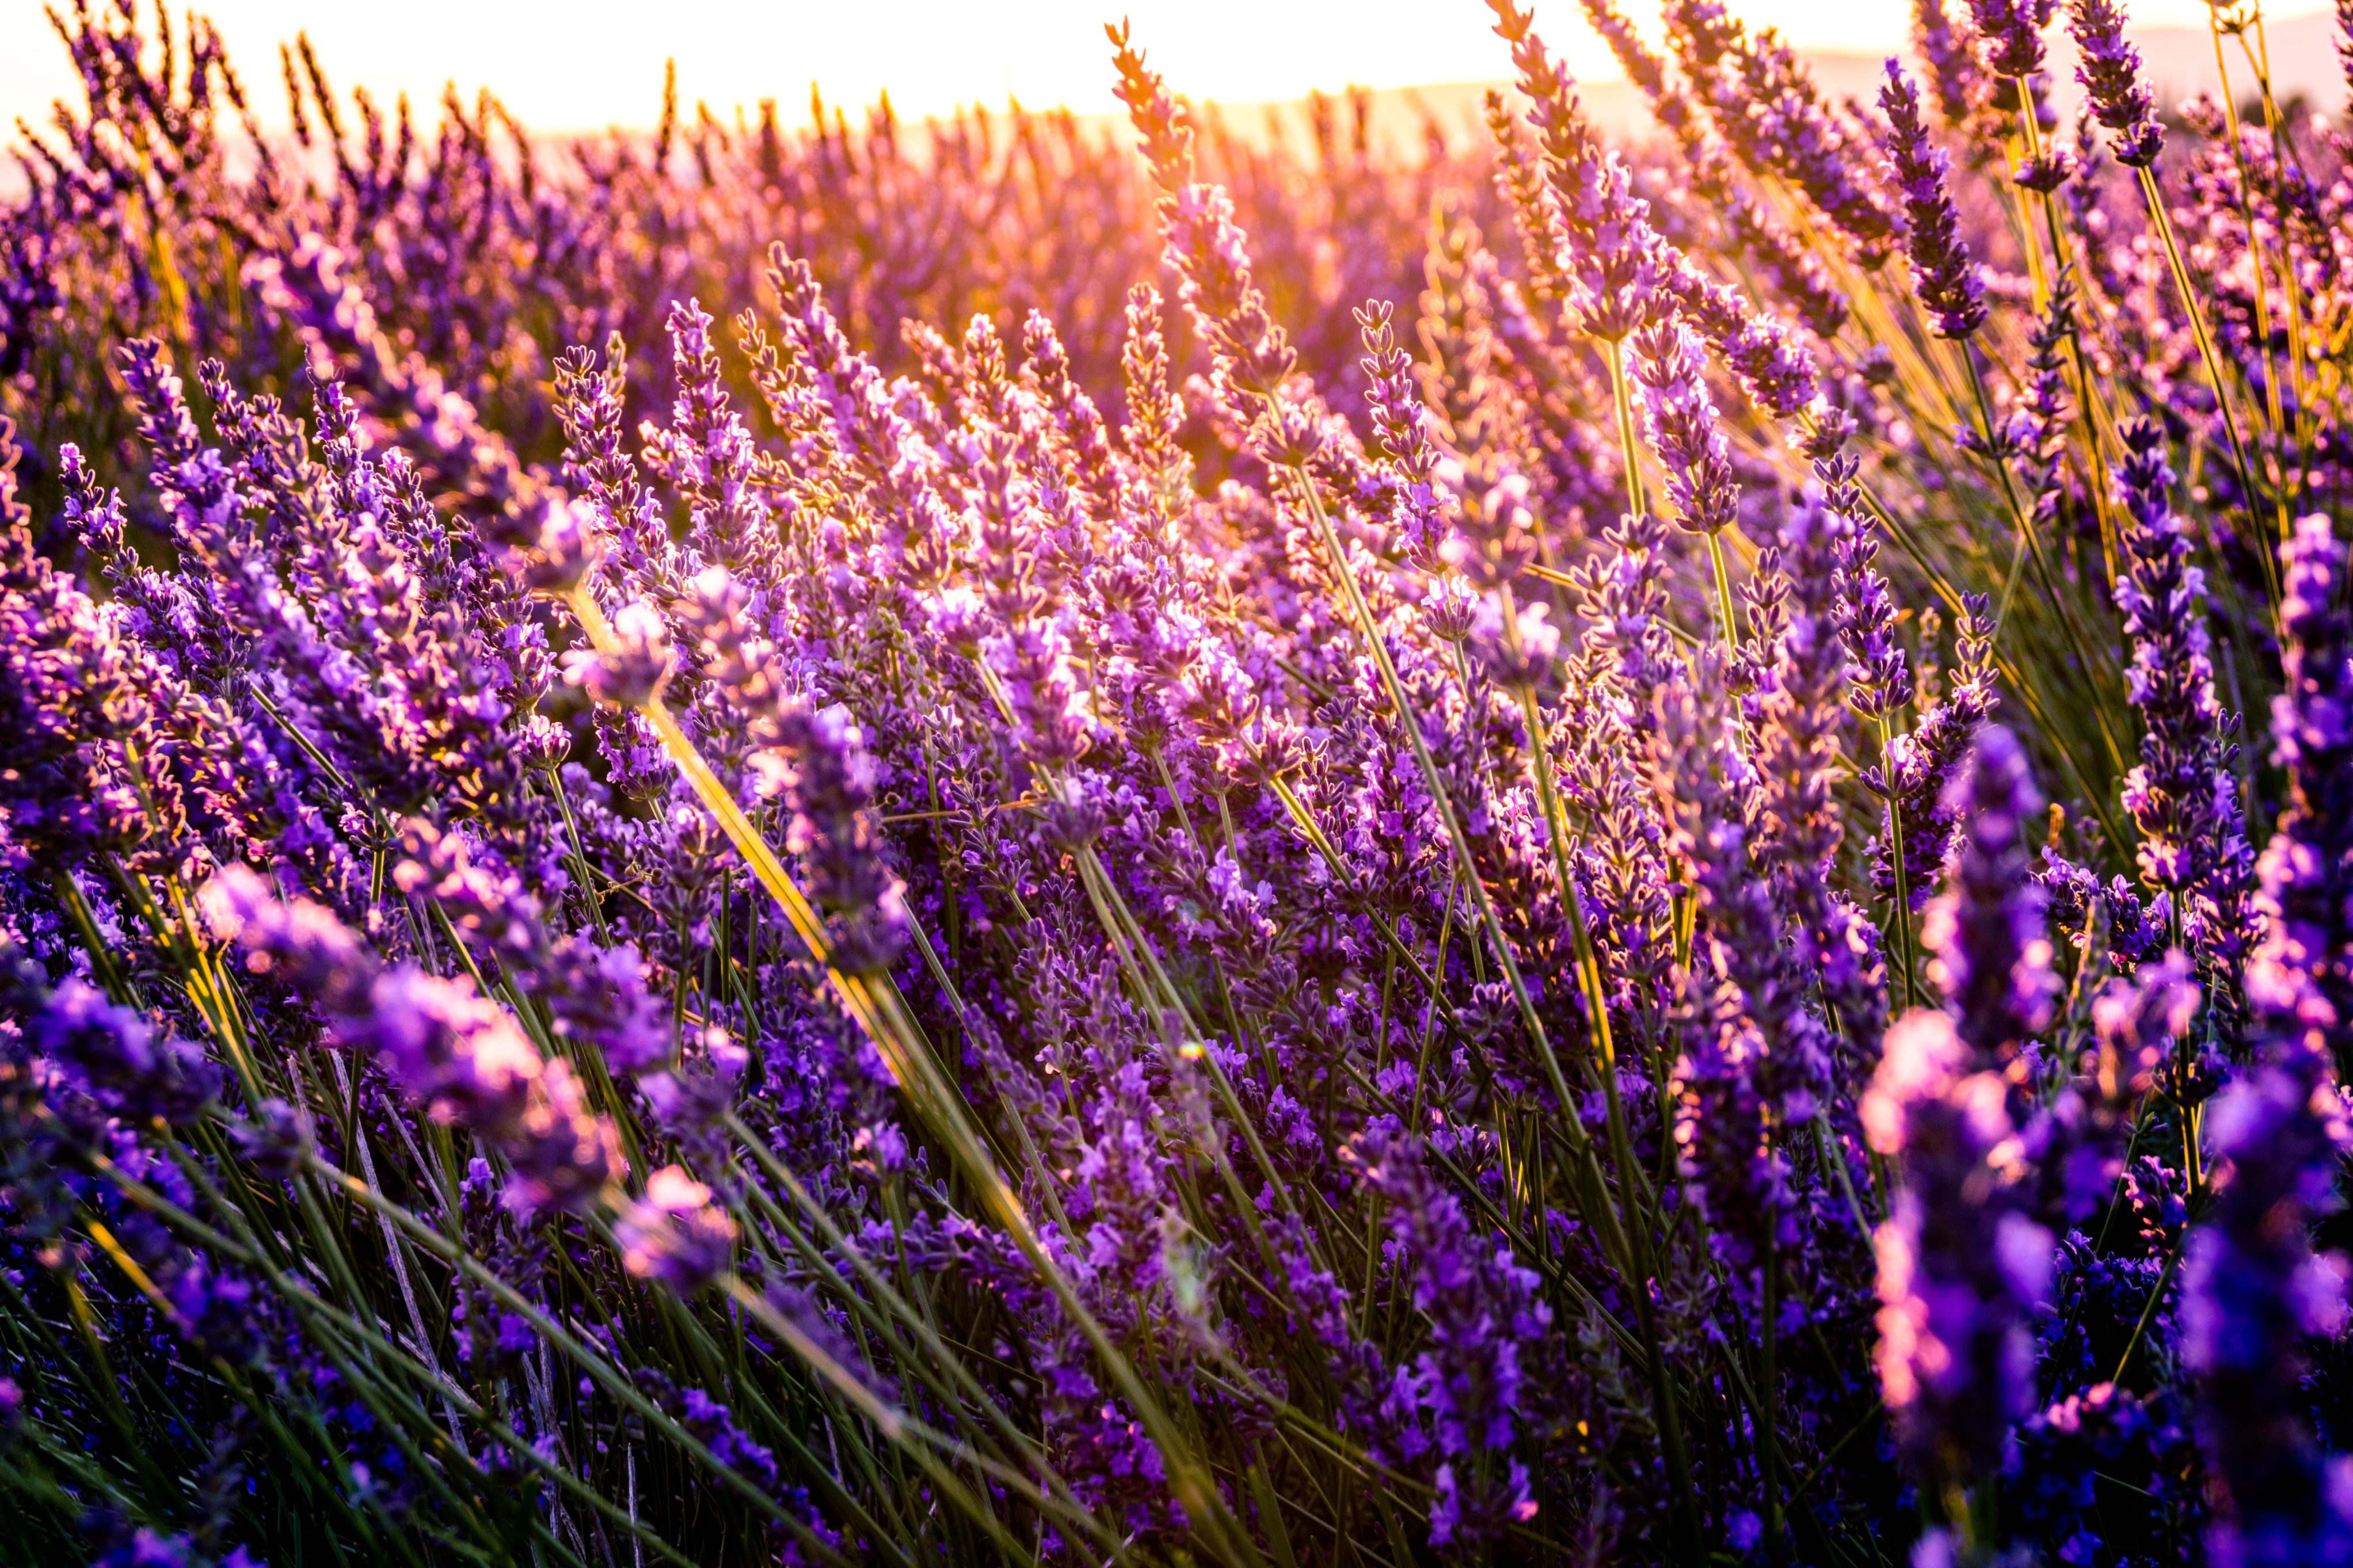 A lavender field in the sunlight